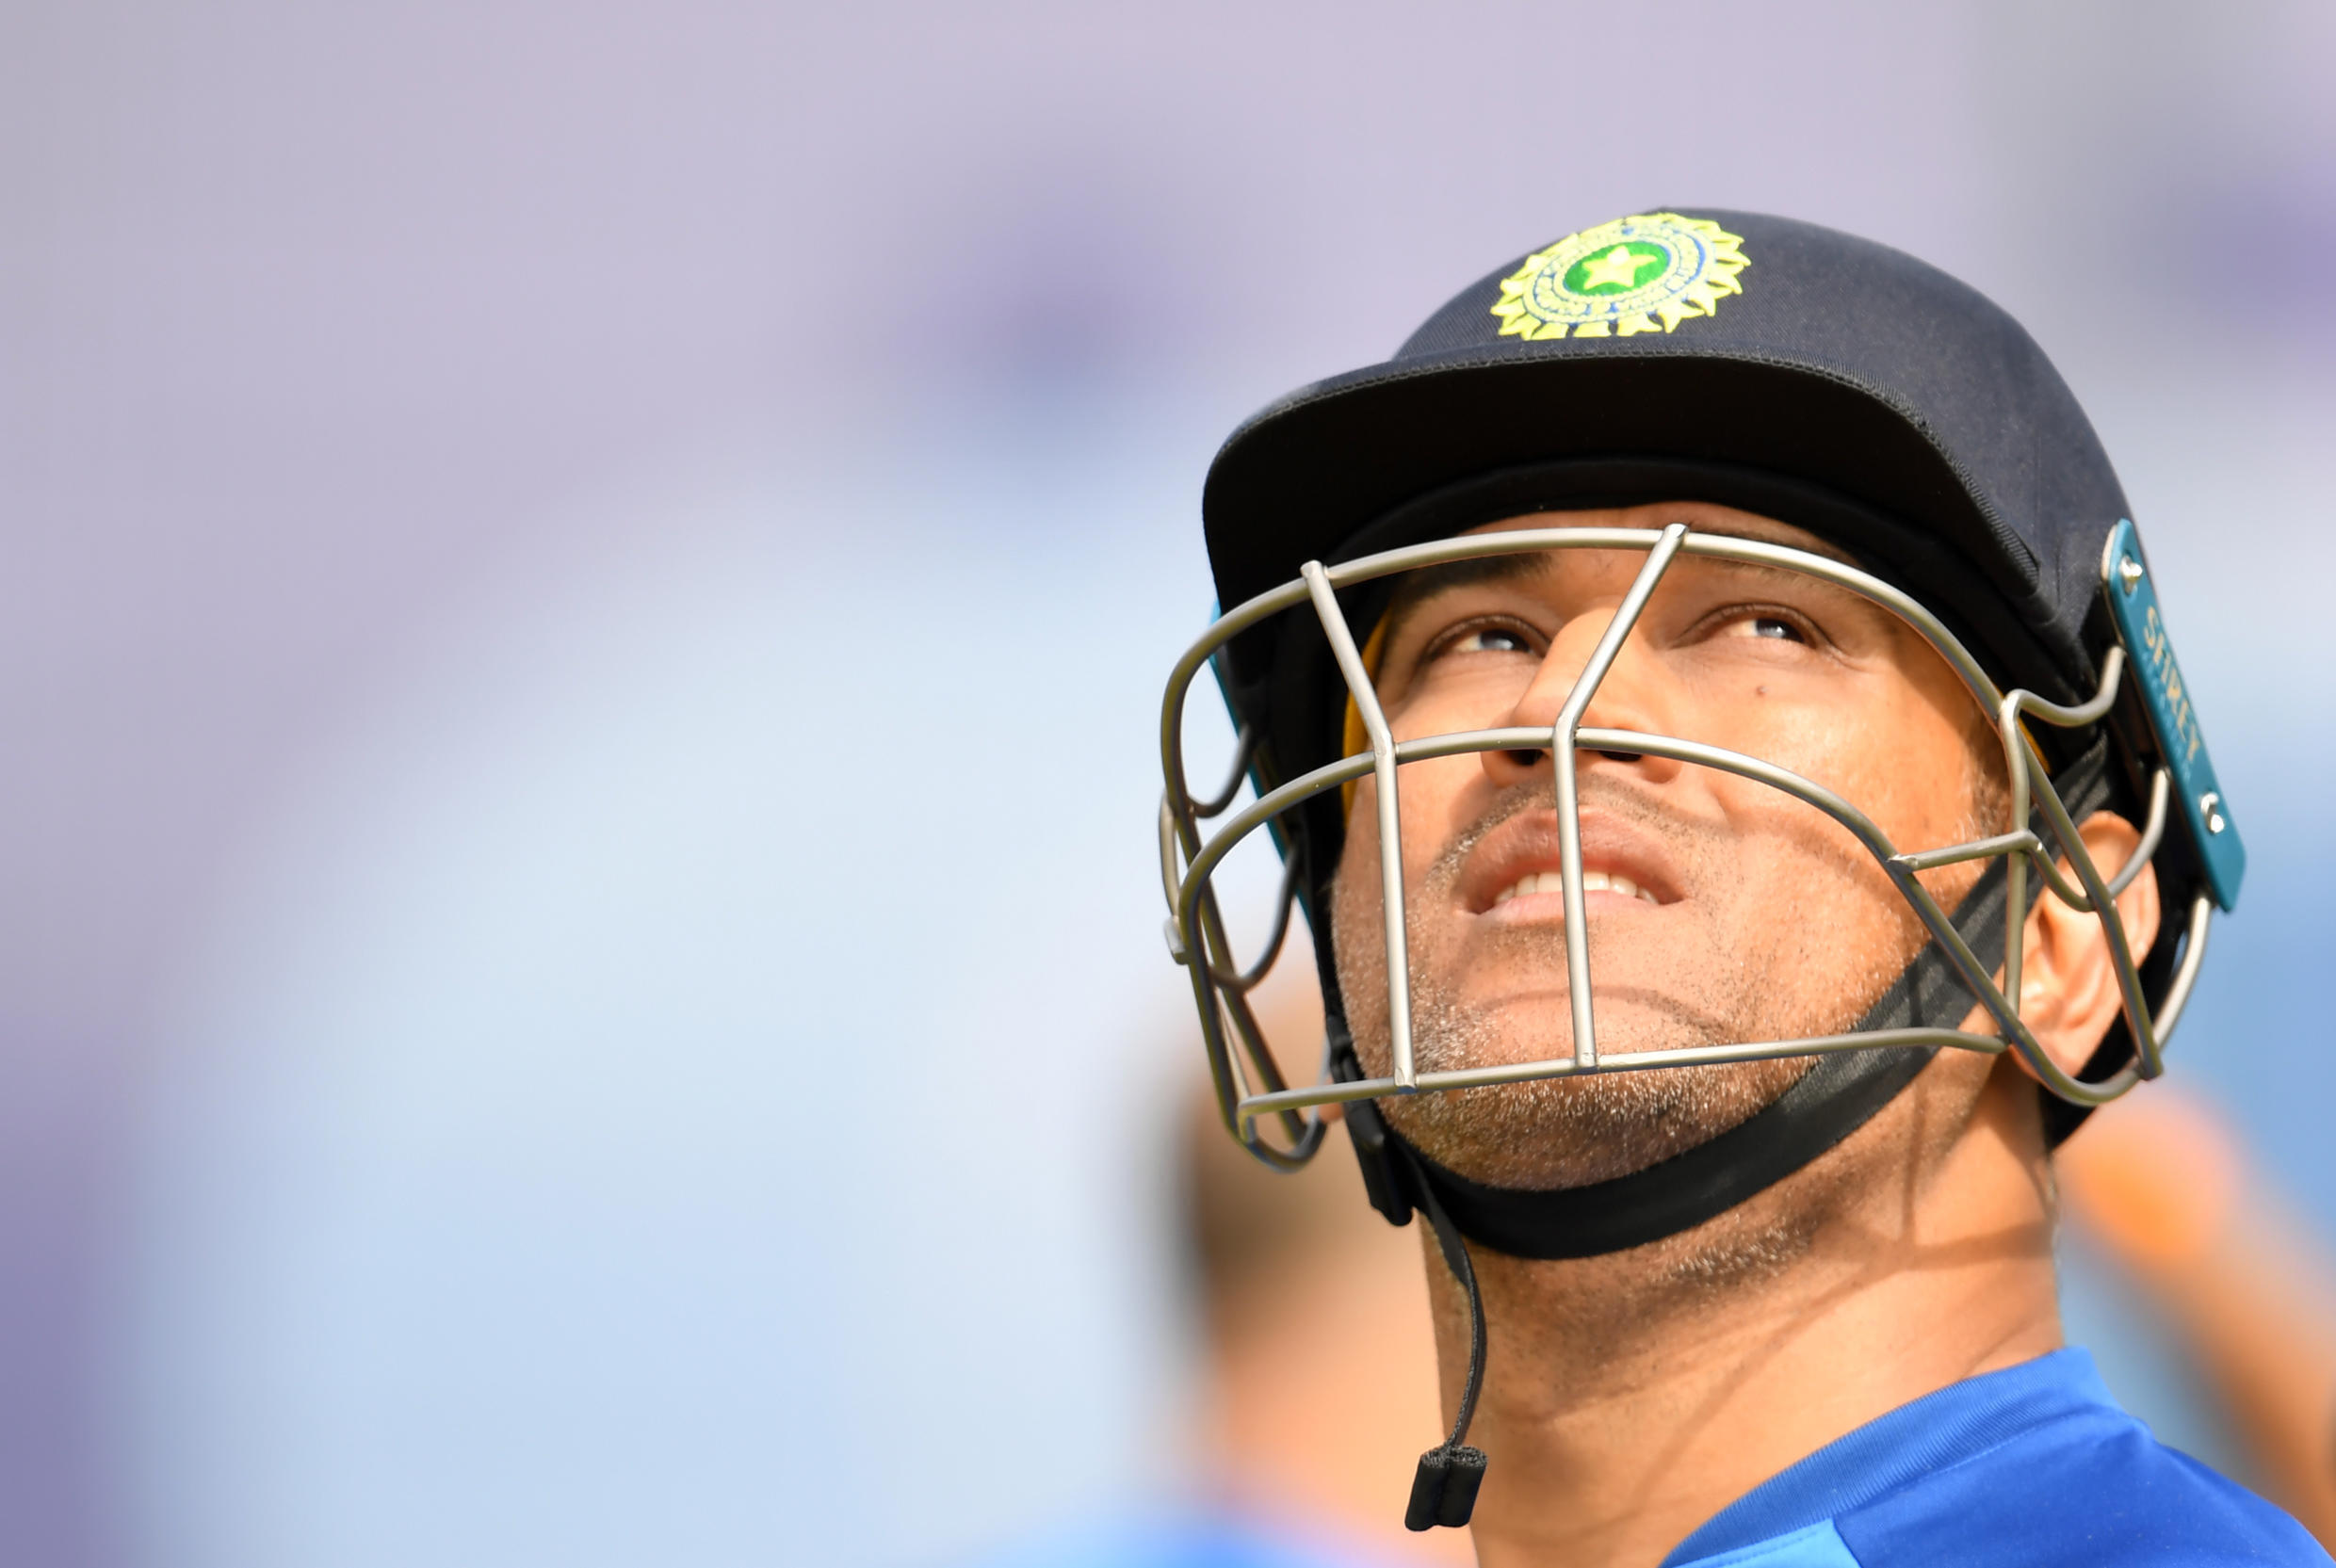 Indian cricket superstar M.S. Dhoni enjoyed success in every format of the game